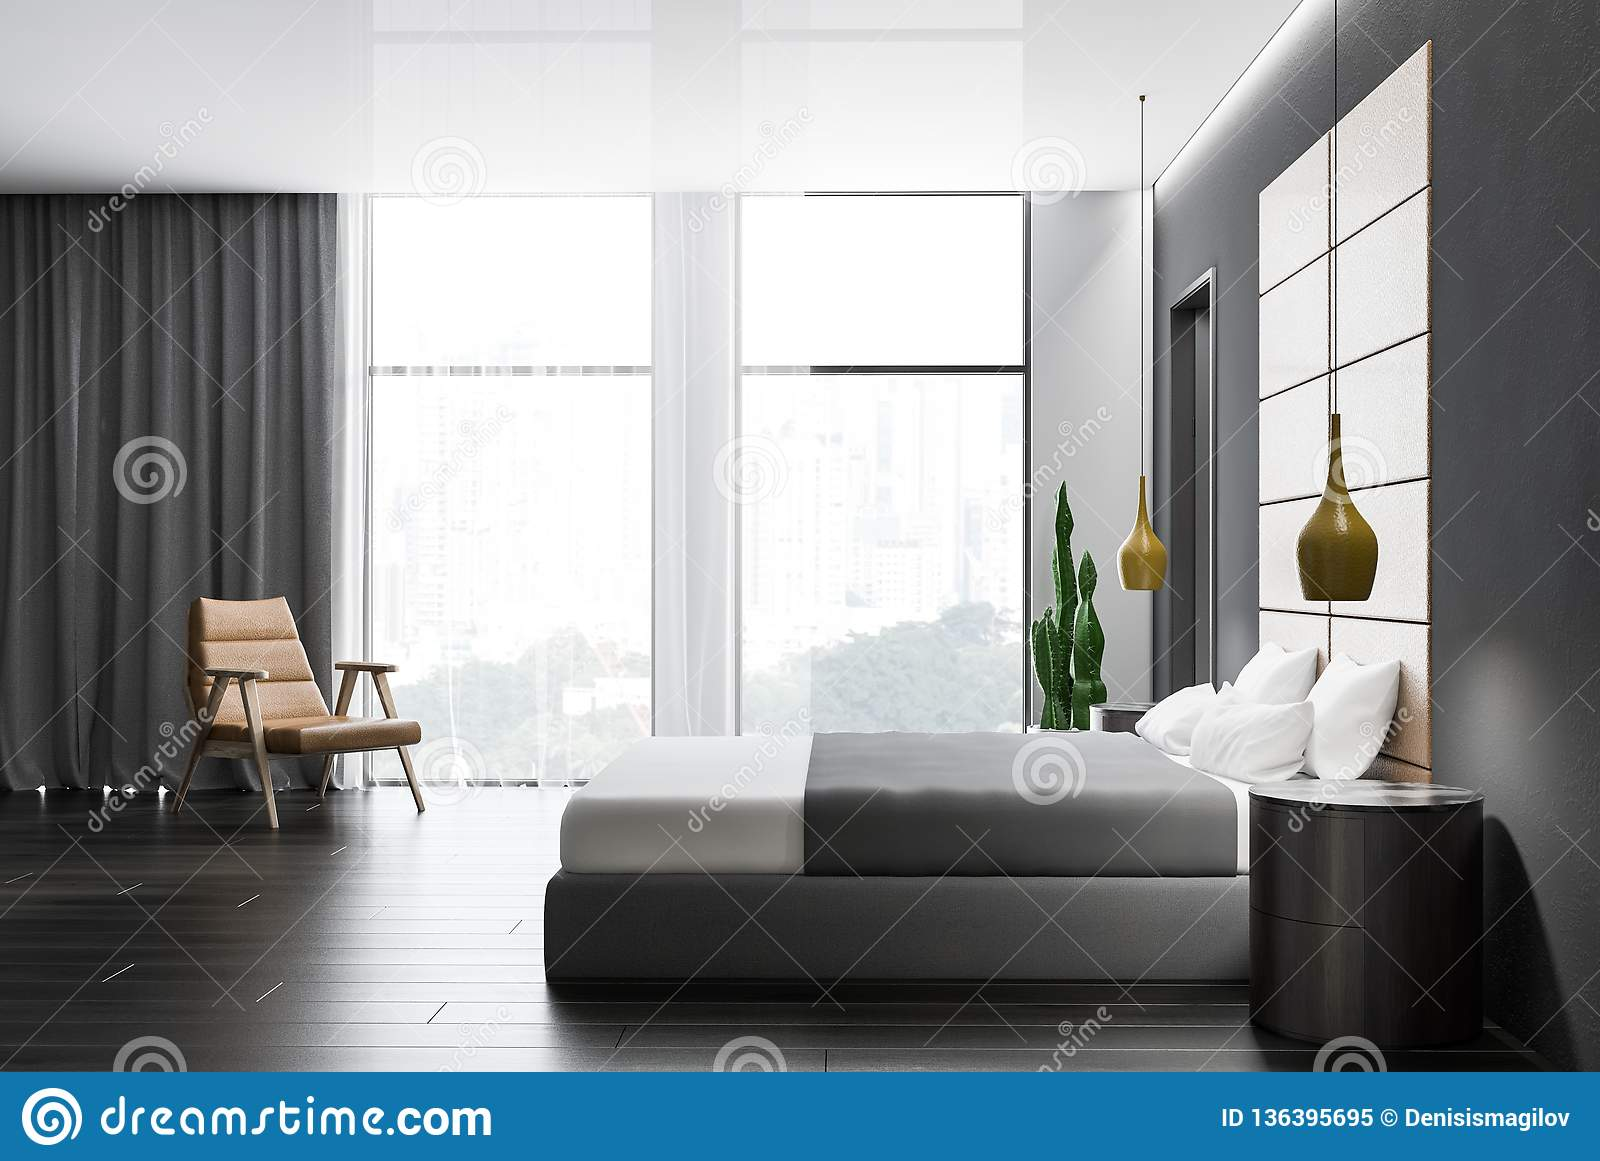 Side View Of Gray Bedroom Interior Stock Illustration Illustration Of Bedroom Headboard 136395695